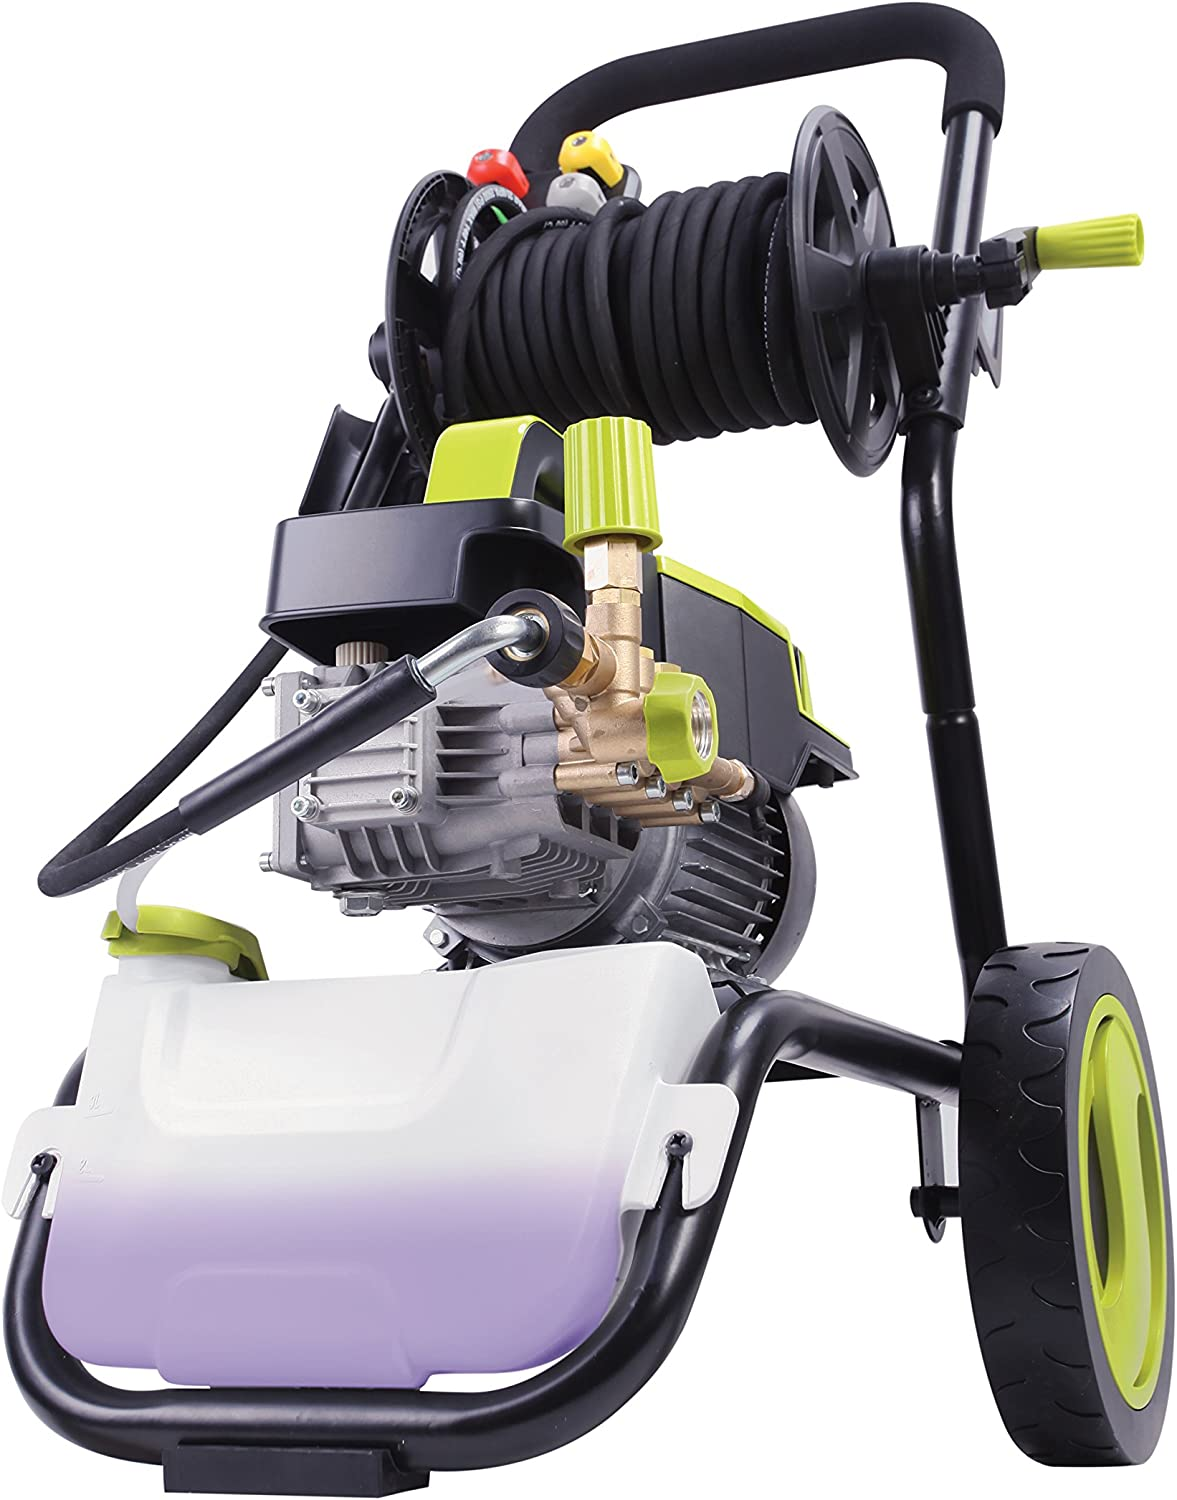 Sun Joe SPX9006-PRO 2.15 HP 1300 PSI 2 GPM Commercial Pressure Washer with Roll Cage and Hose Reel